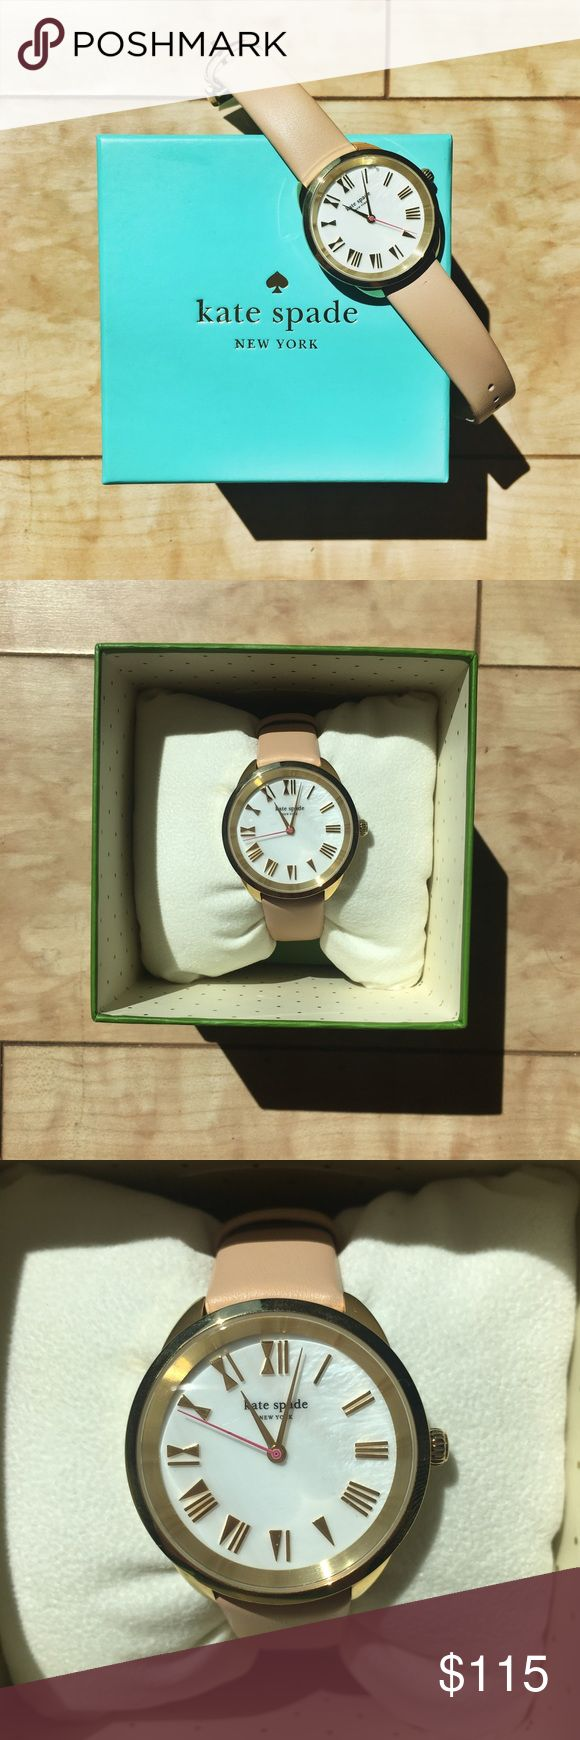 Unique Kate Spade Light Pink Watch Gorgeous watch by Kate Spade Gold accents with